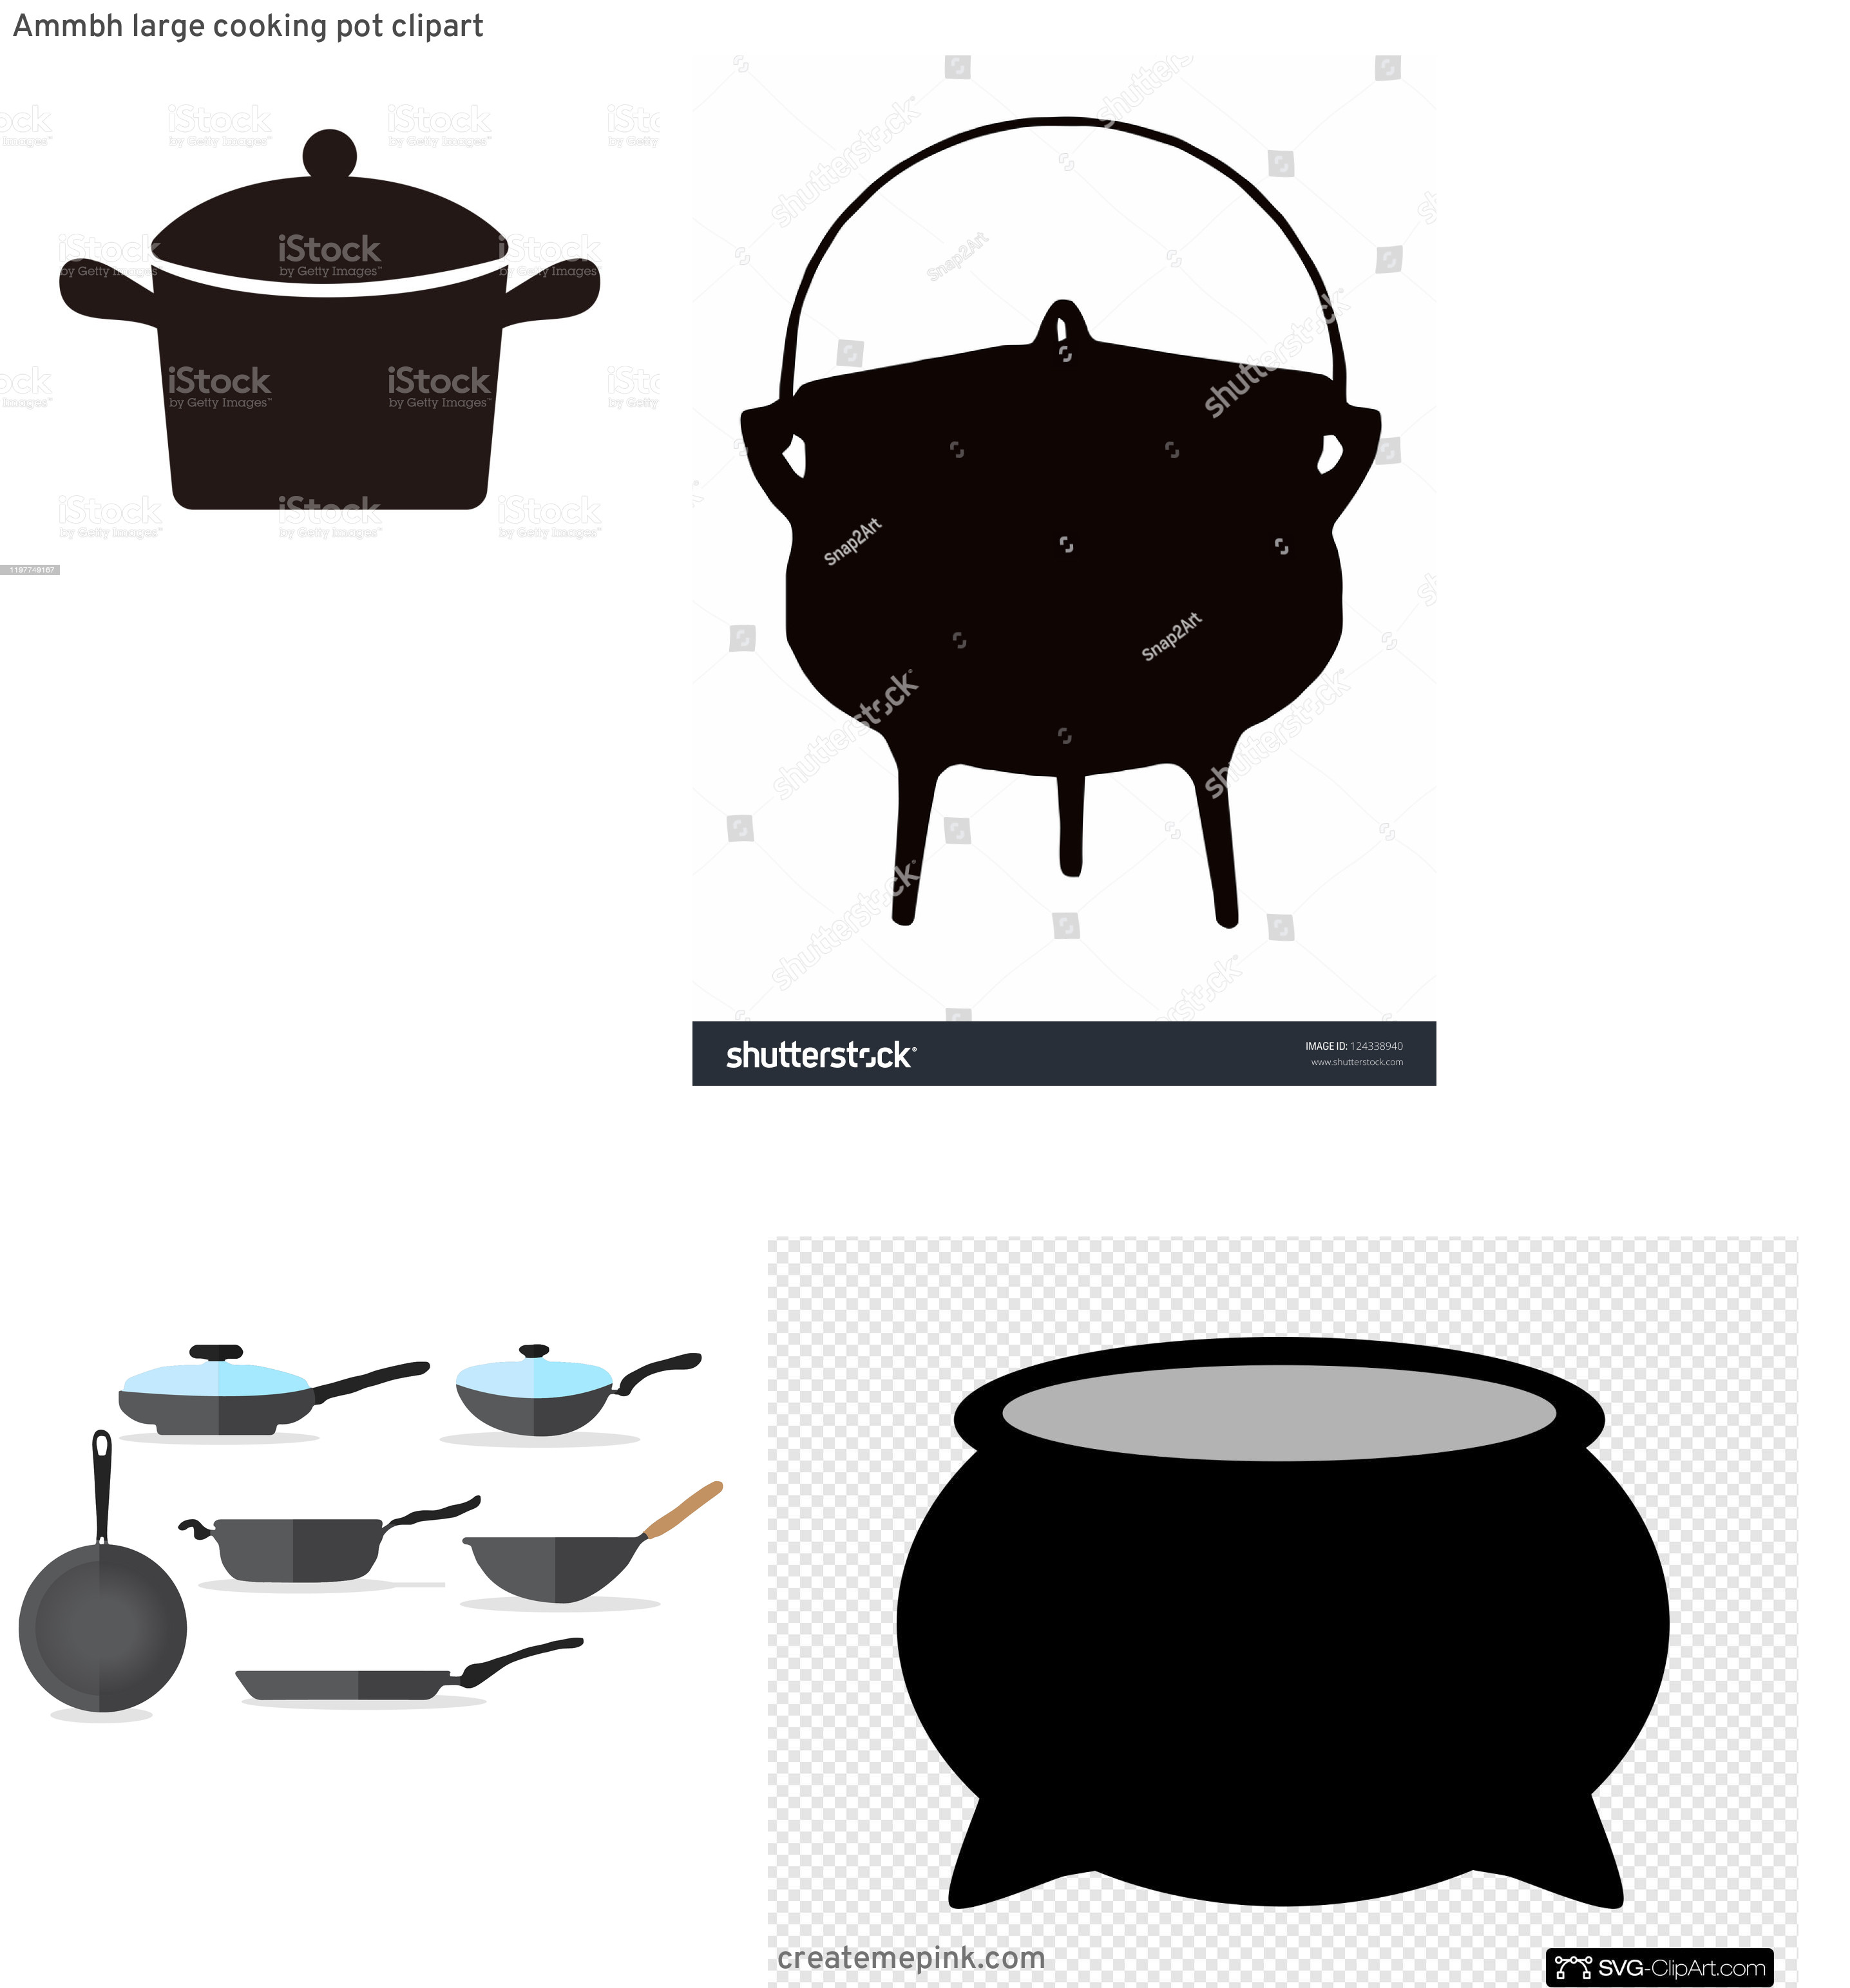 Cook Pot Vector: Ammbh Large Cooking Pot Clipart